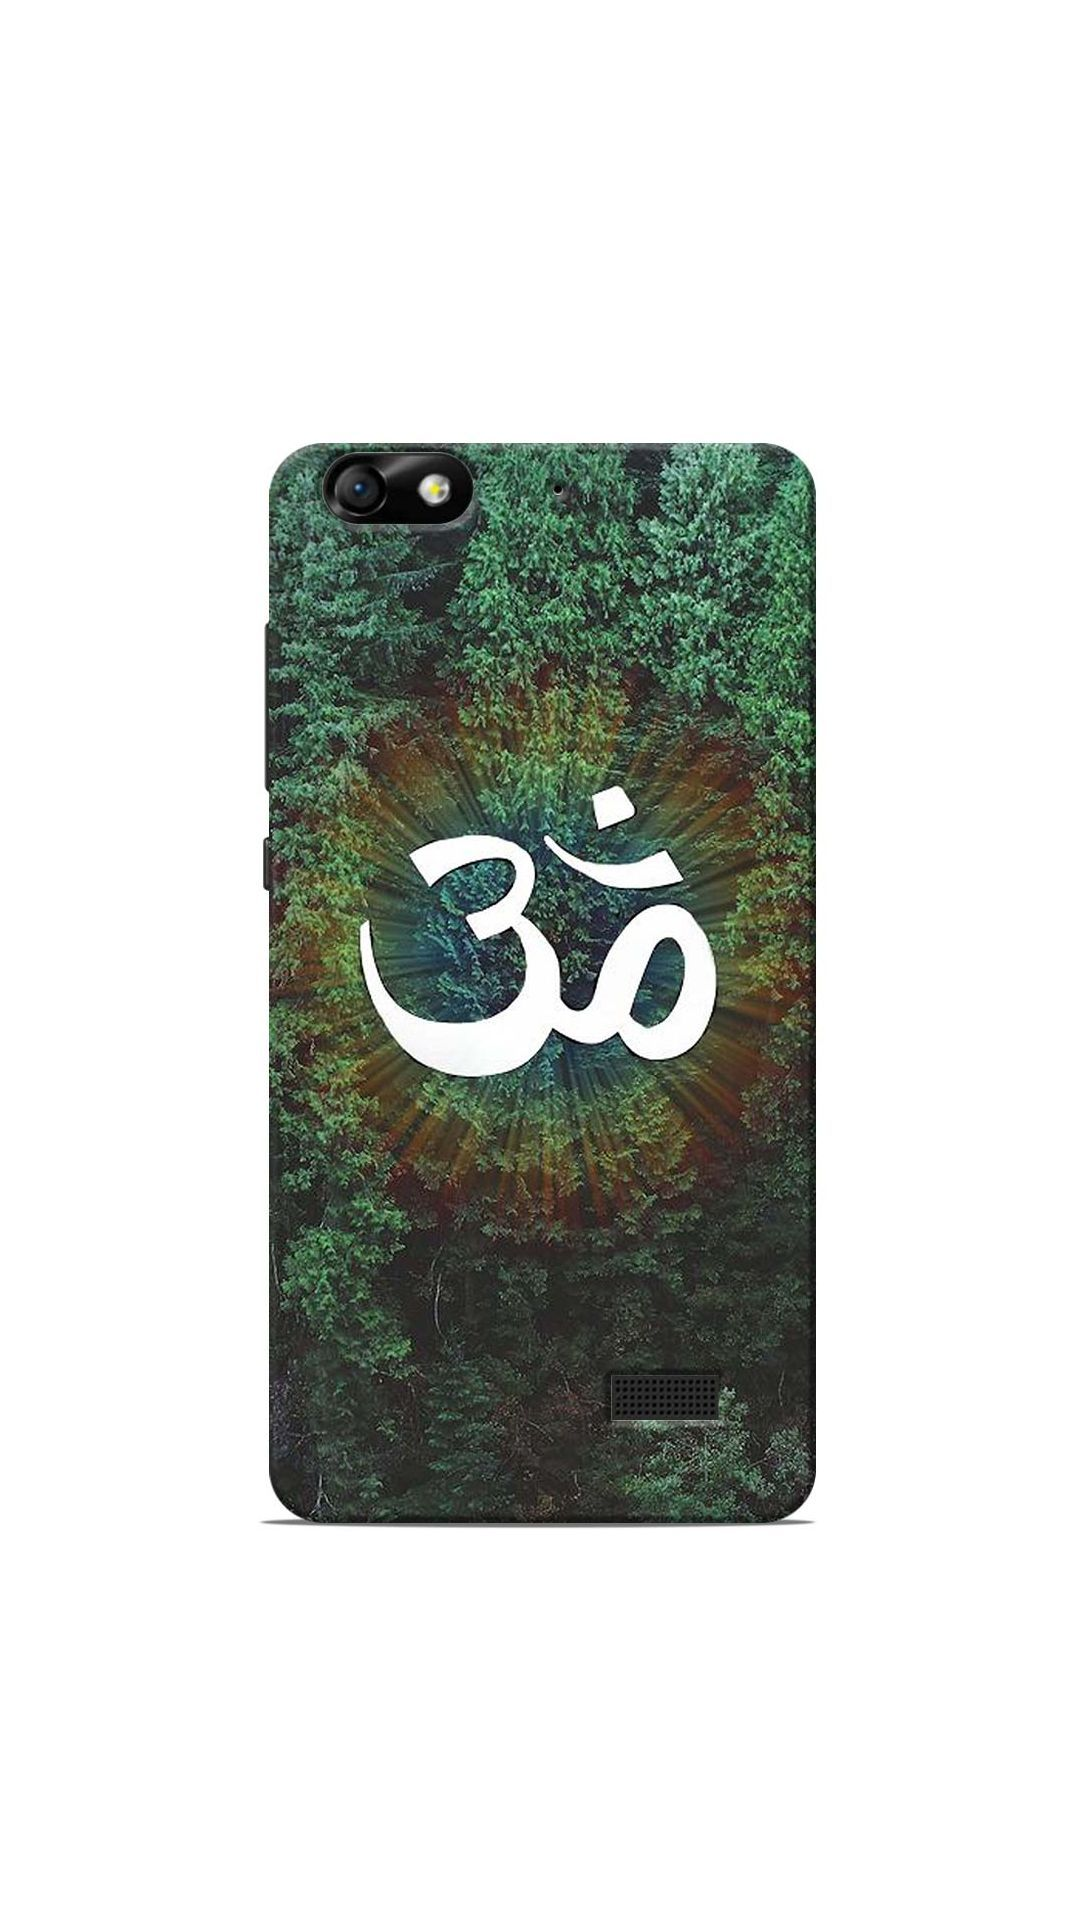 Buy Online Om Shiva - Huawei Honor 4C Back Cover adorns your phone